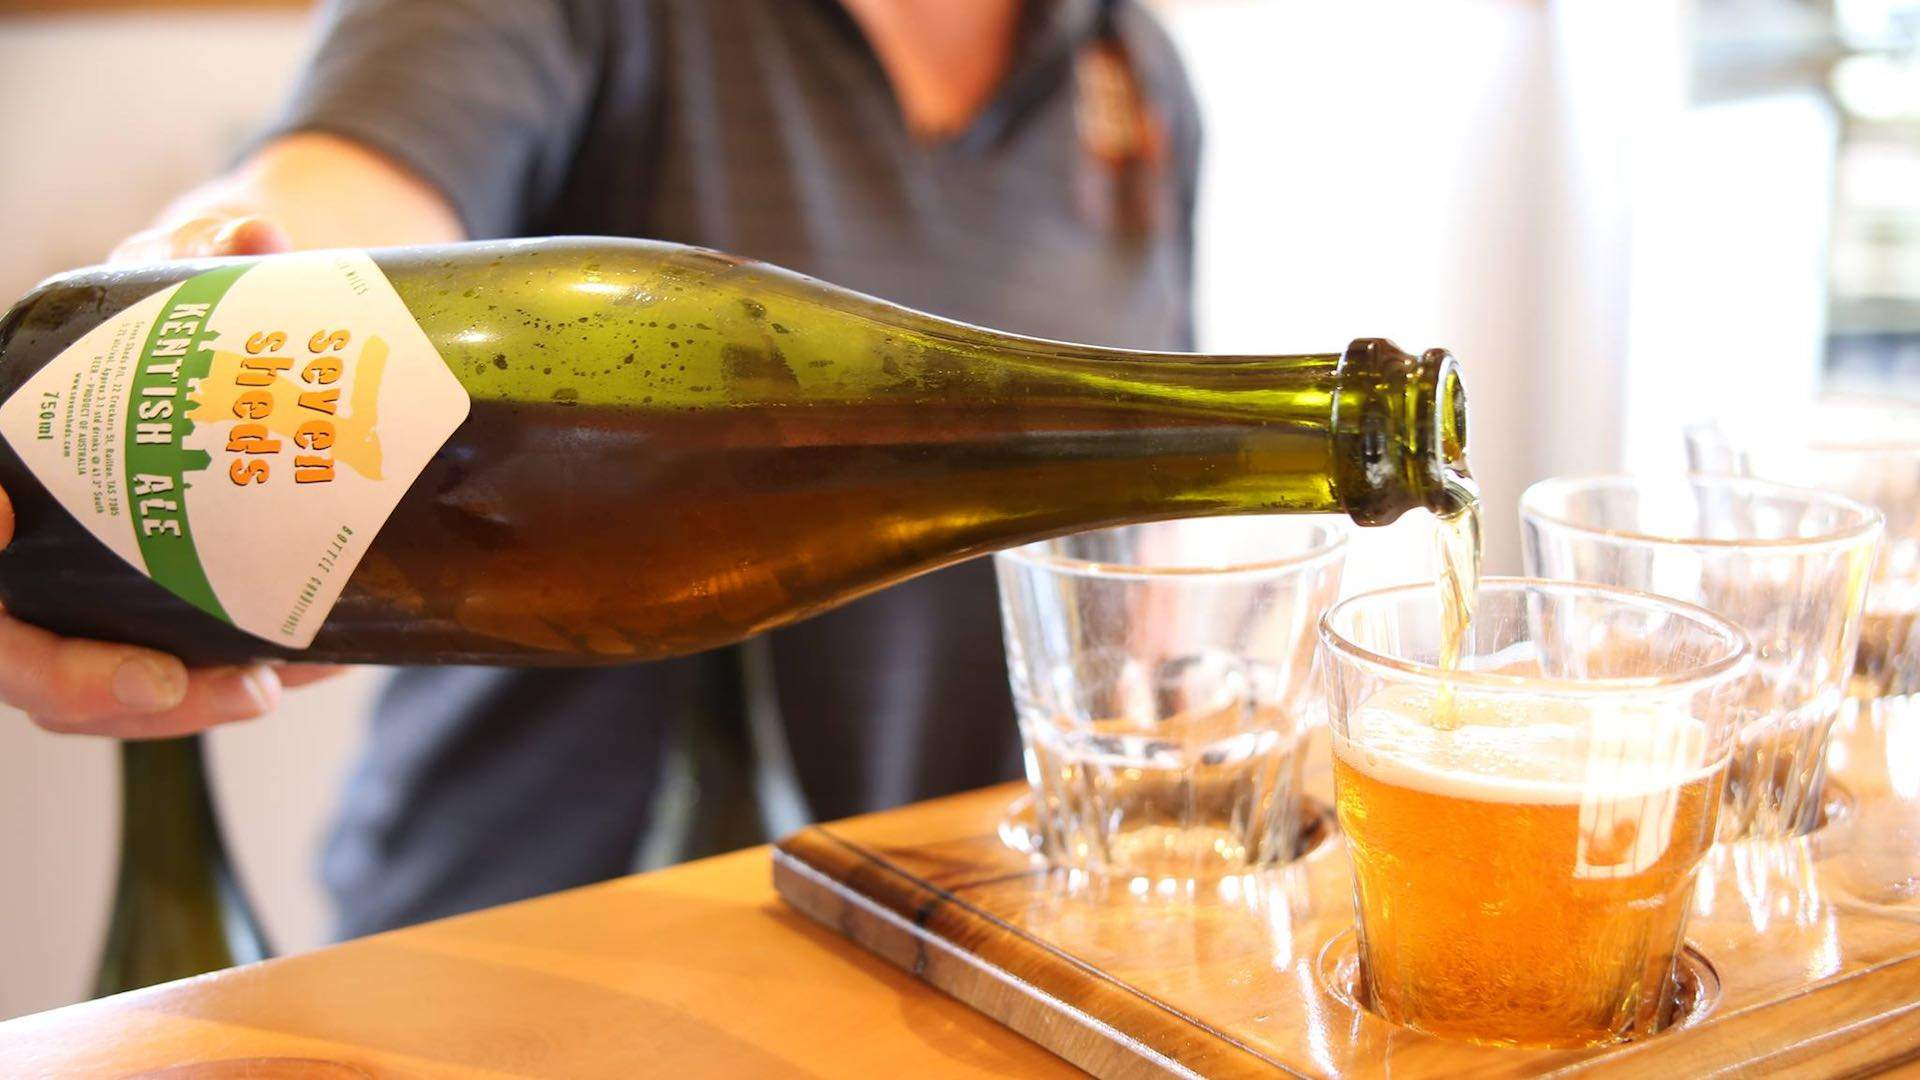 Seven Sheds Brewery Meadery and Hop Garden in Tasmania